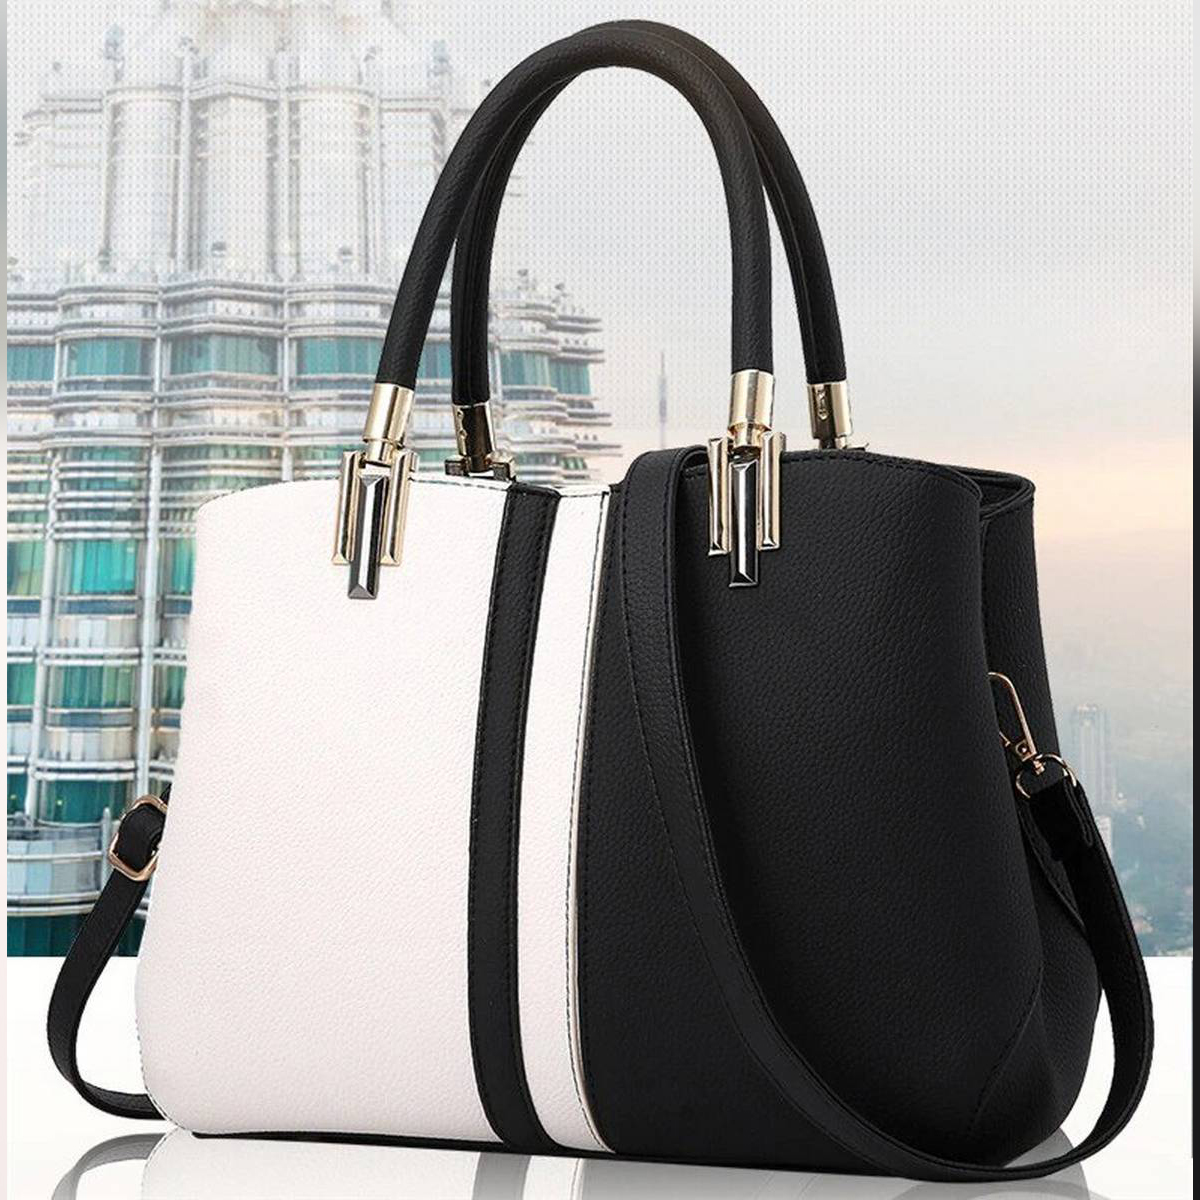 PU Faux Leather Tote Shoulder Bag For Women Handbags Ladies Hand Bags for Girls Party Bags